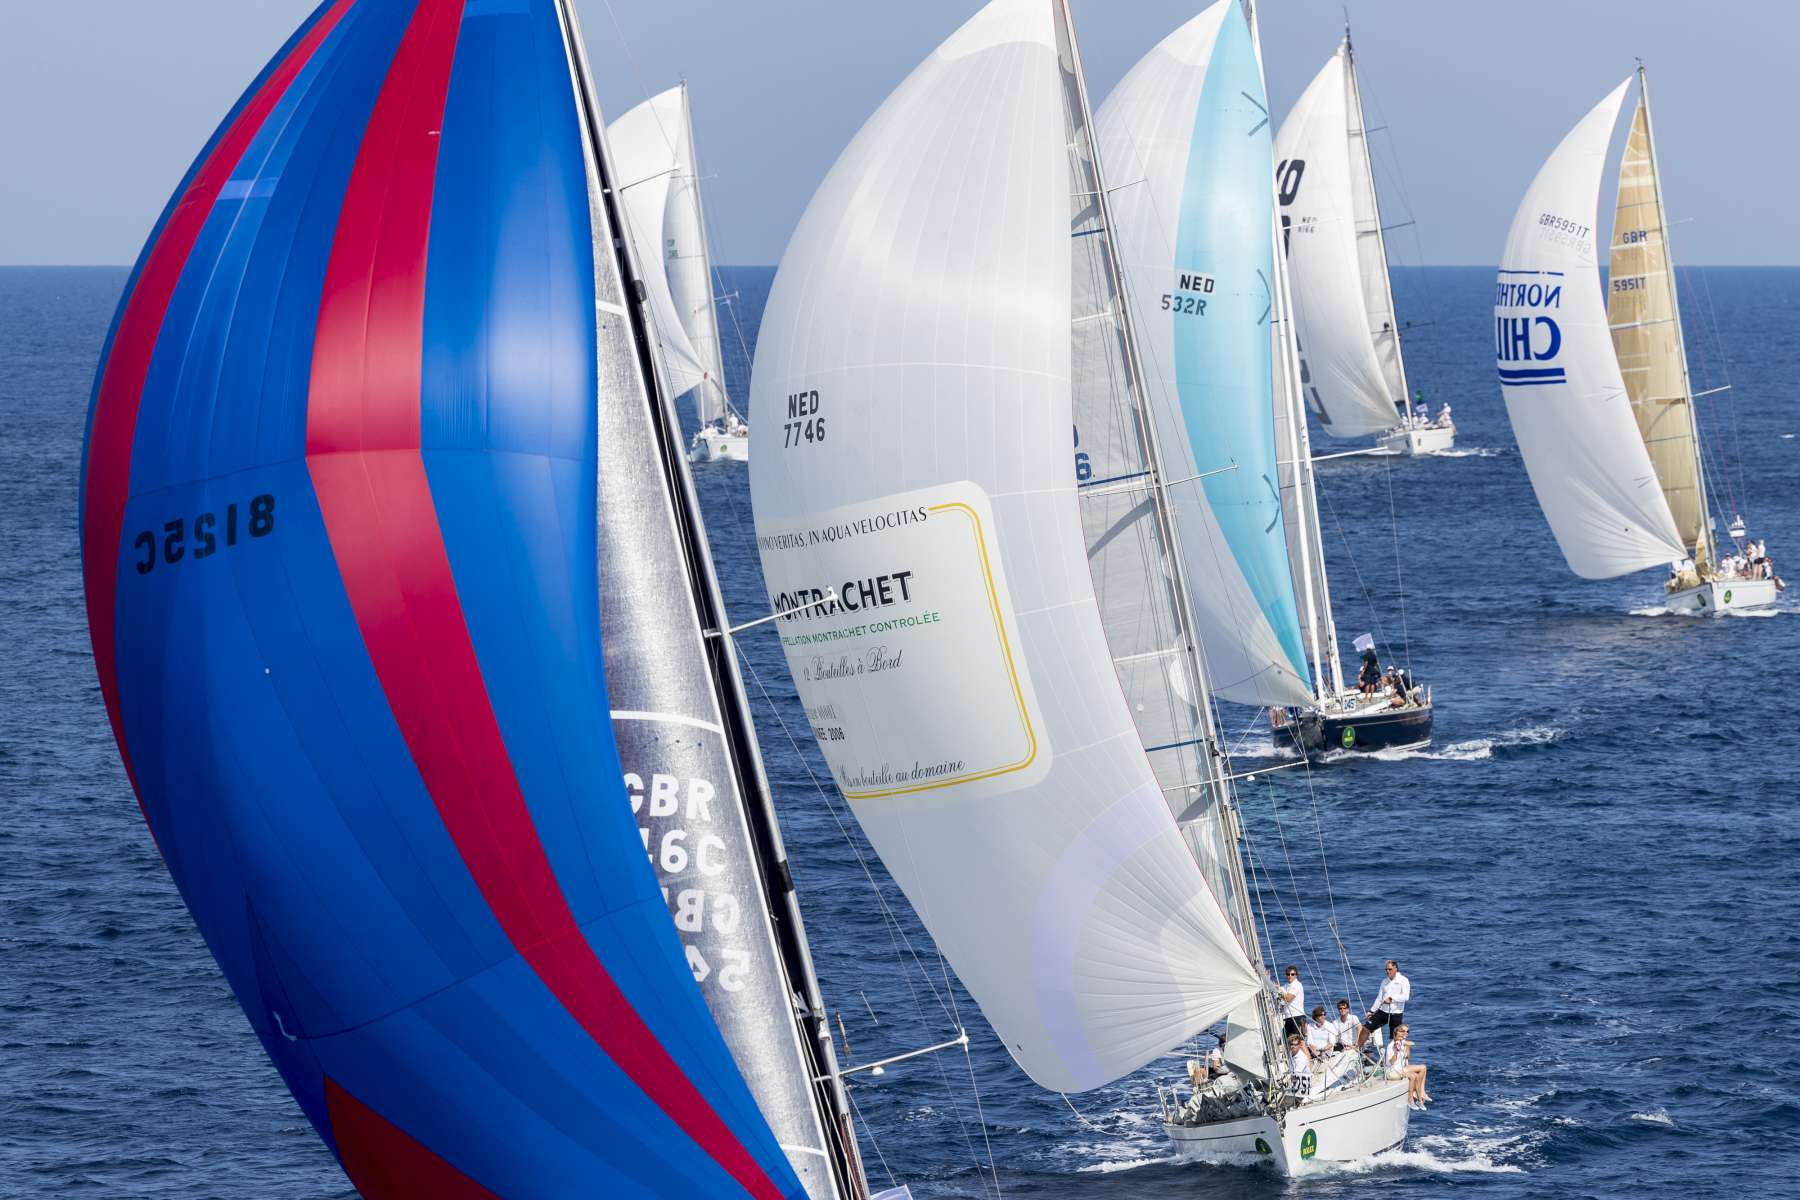 Rolex Swan Cup 2016 day 2 12